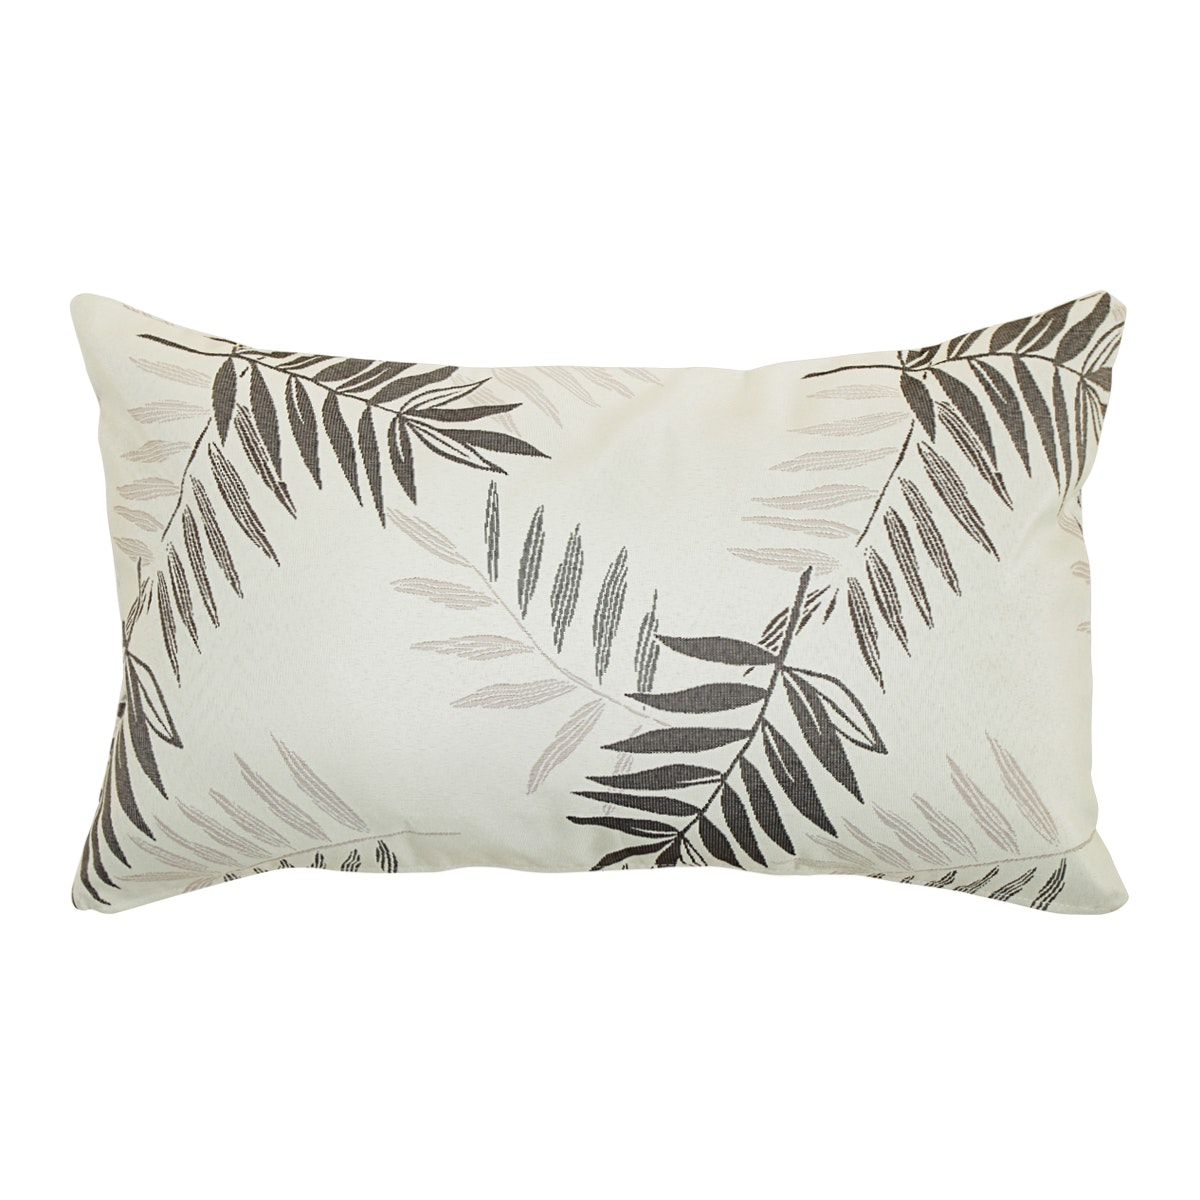 Beam and Co Cushion Cover 50x30cm Cover Autum Leaves